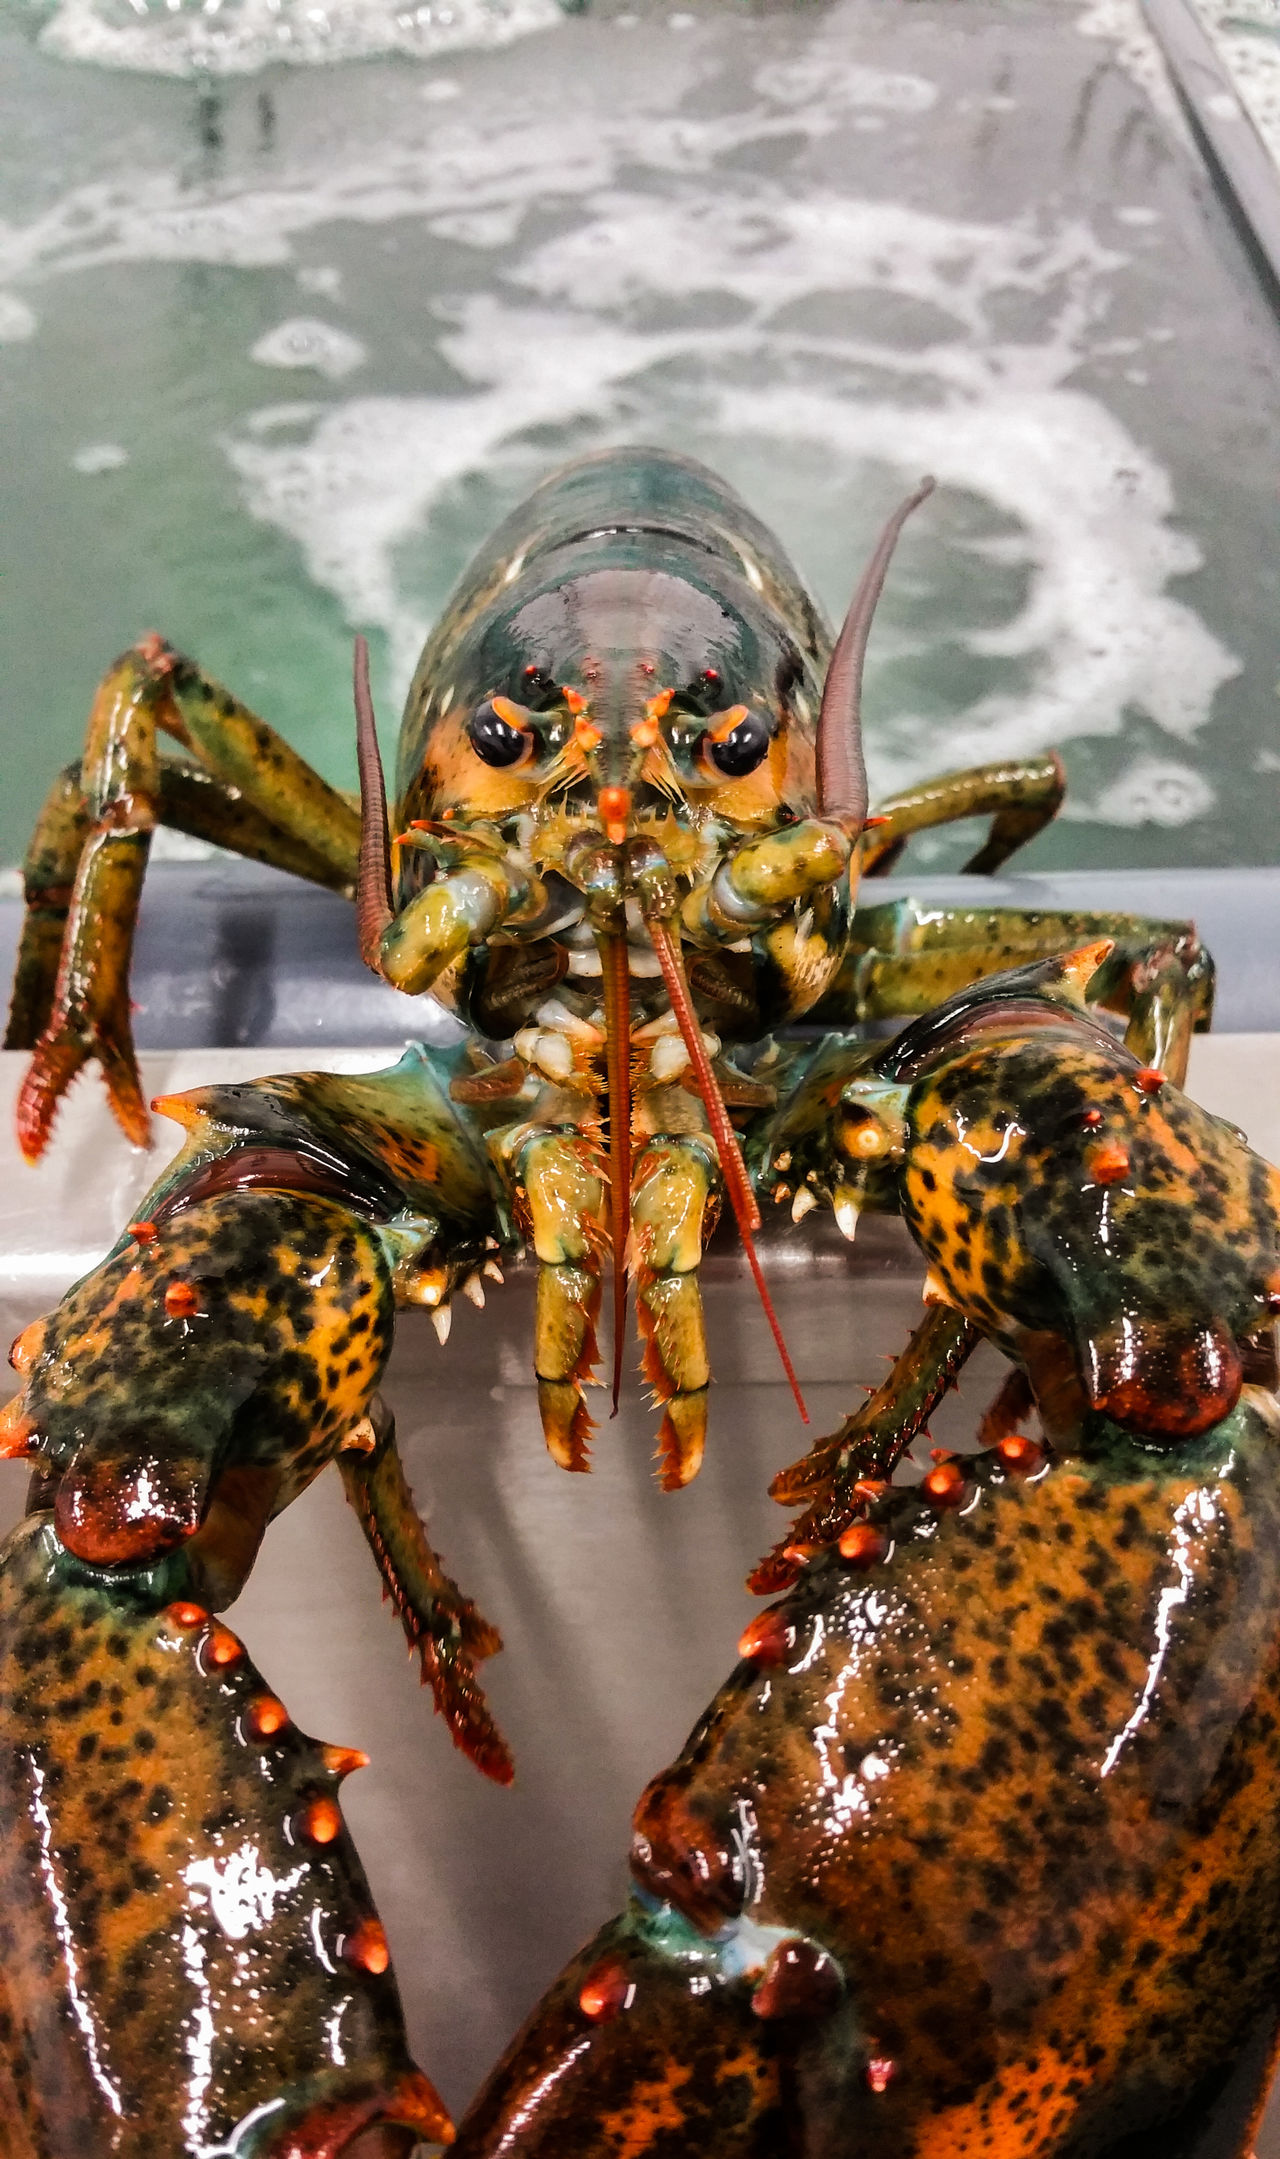 One Animal Water Close-up Animal Themes Animals The Week On EyeEem Wild Sea Life. Aquarium Beauty In Nature Lobsters Sea Portrait Sea monster Monster Animal Wildlife Nature Animals In The Wild Sea Life No People EyeEmNewHere New Talent Underwater